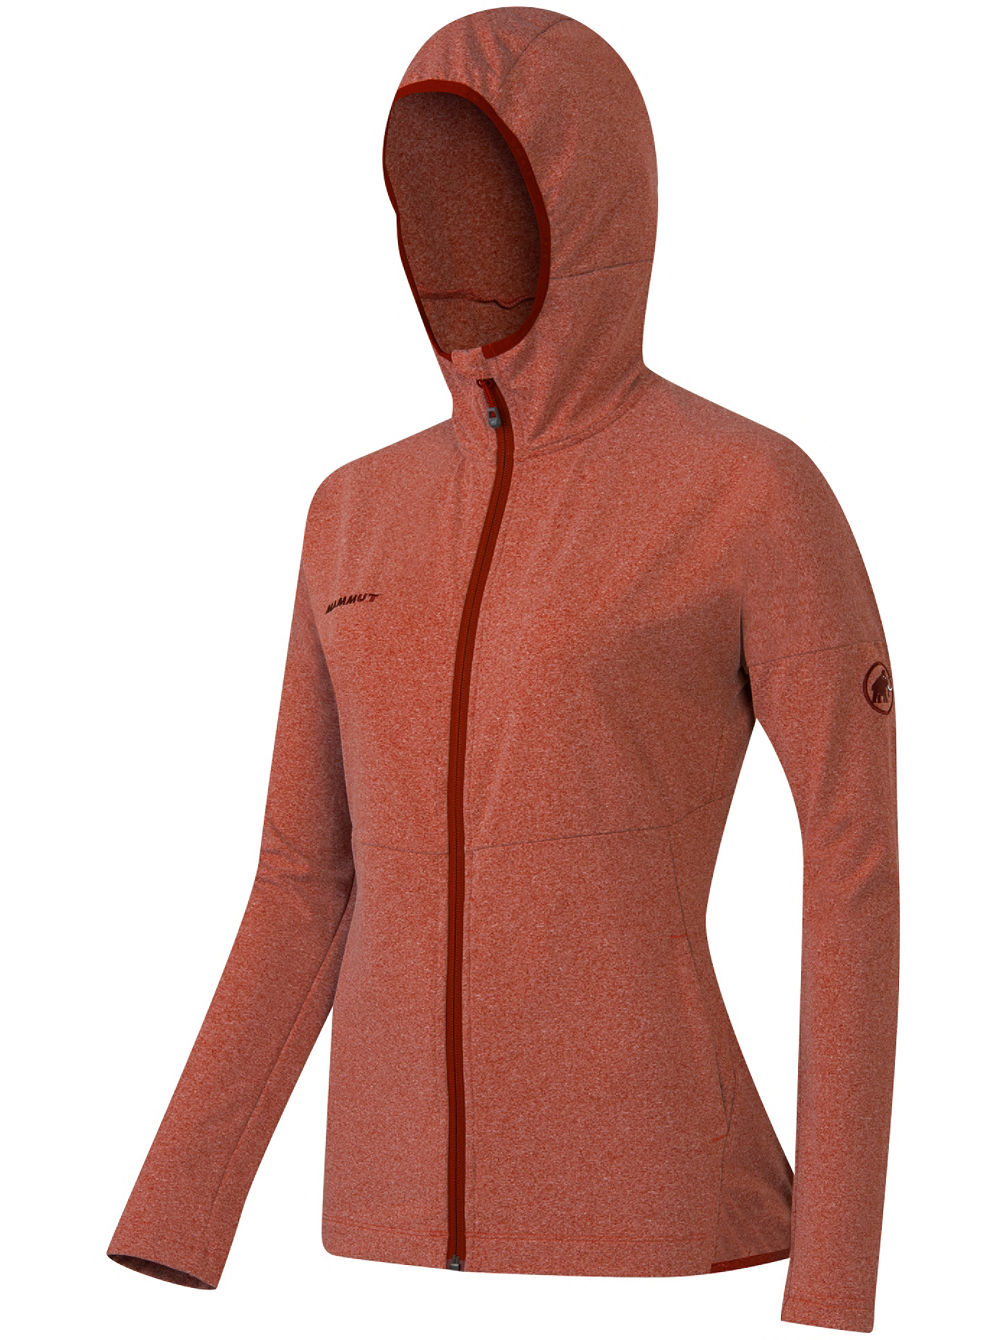 Luina Ml Hooded Jacket